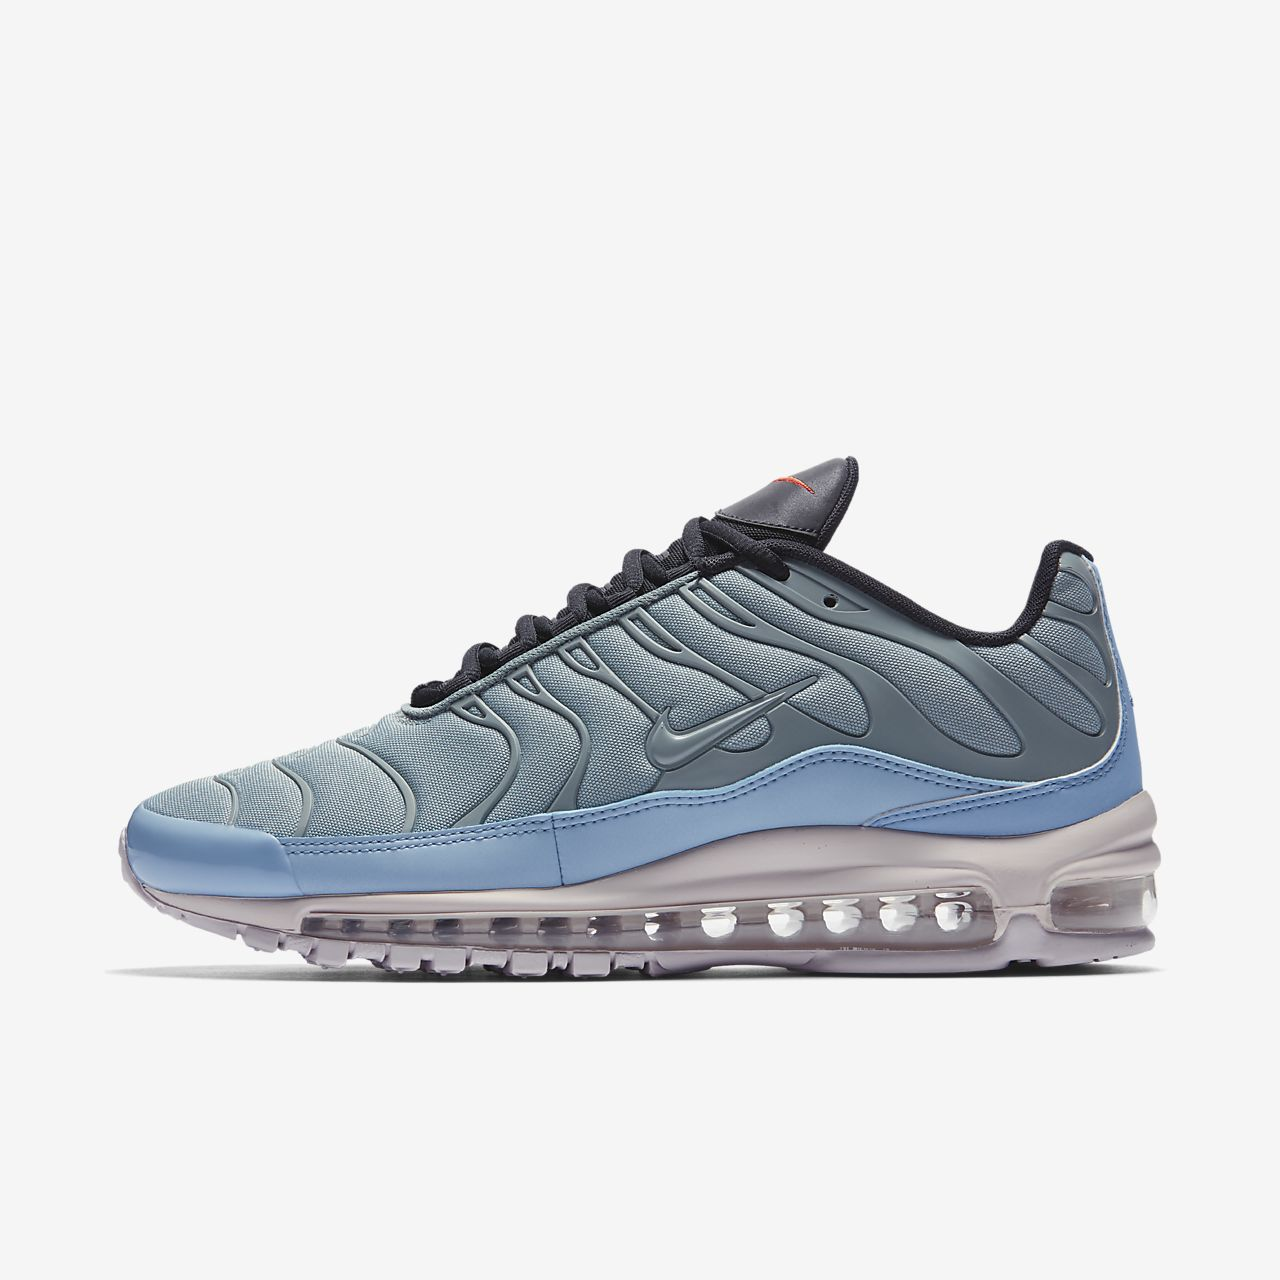 ... Nike Air Max 97 Plus Men's Shoe